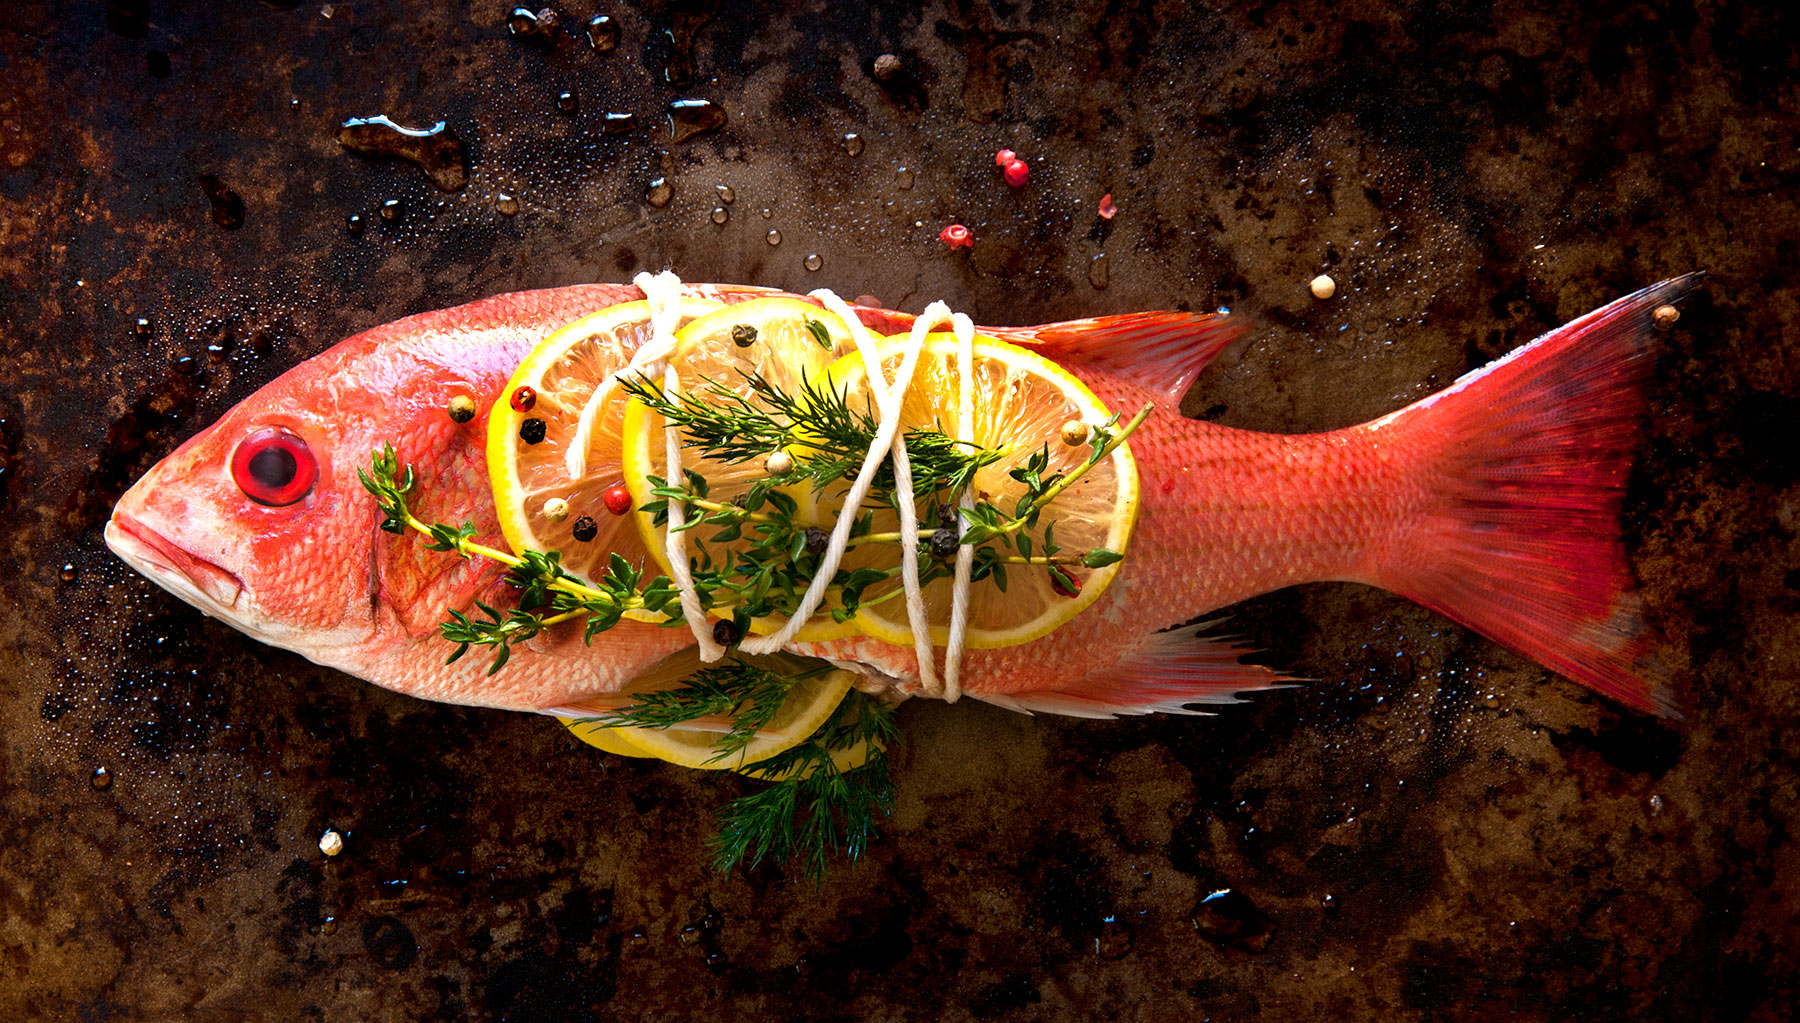 Fish-Carl Kravats Food Photography